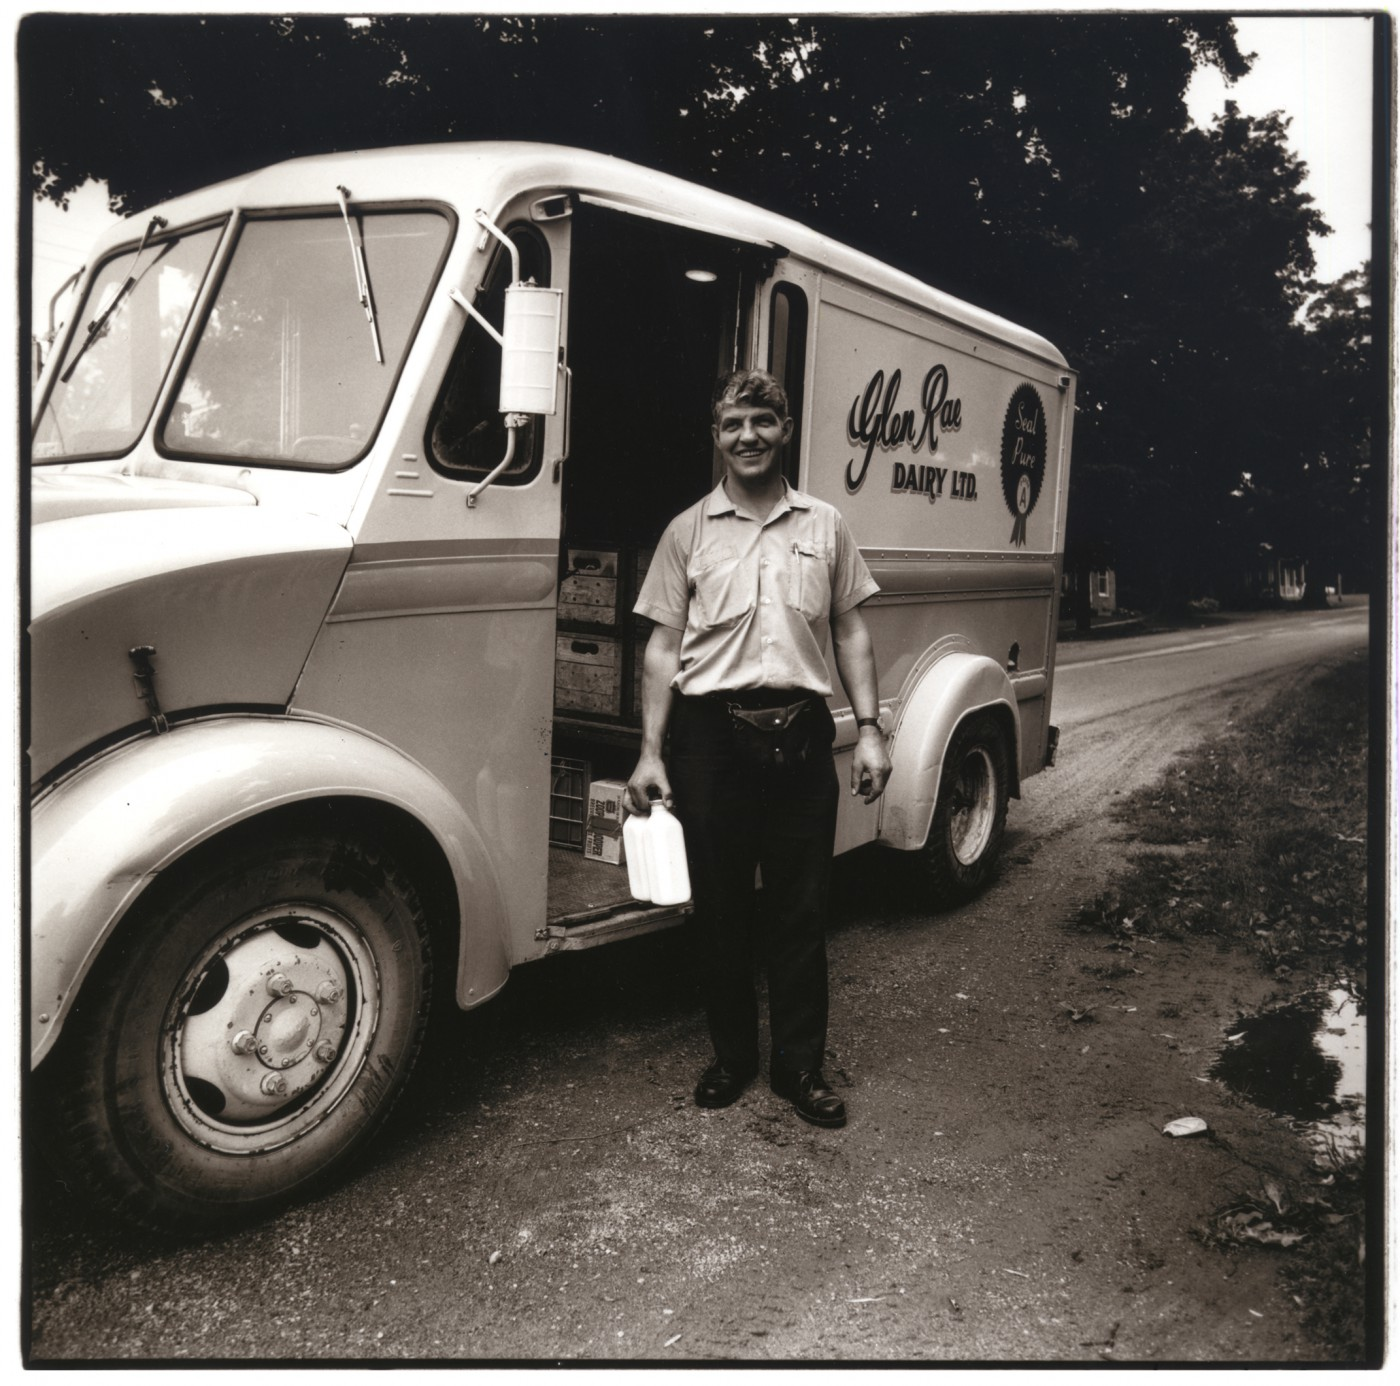 Neil Newton, </span><span><em>The Milkman</em>, </span><span>1973